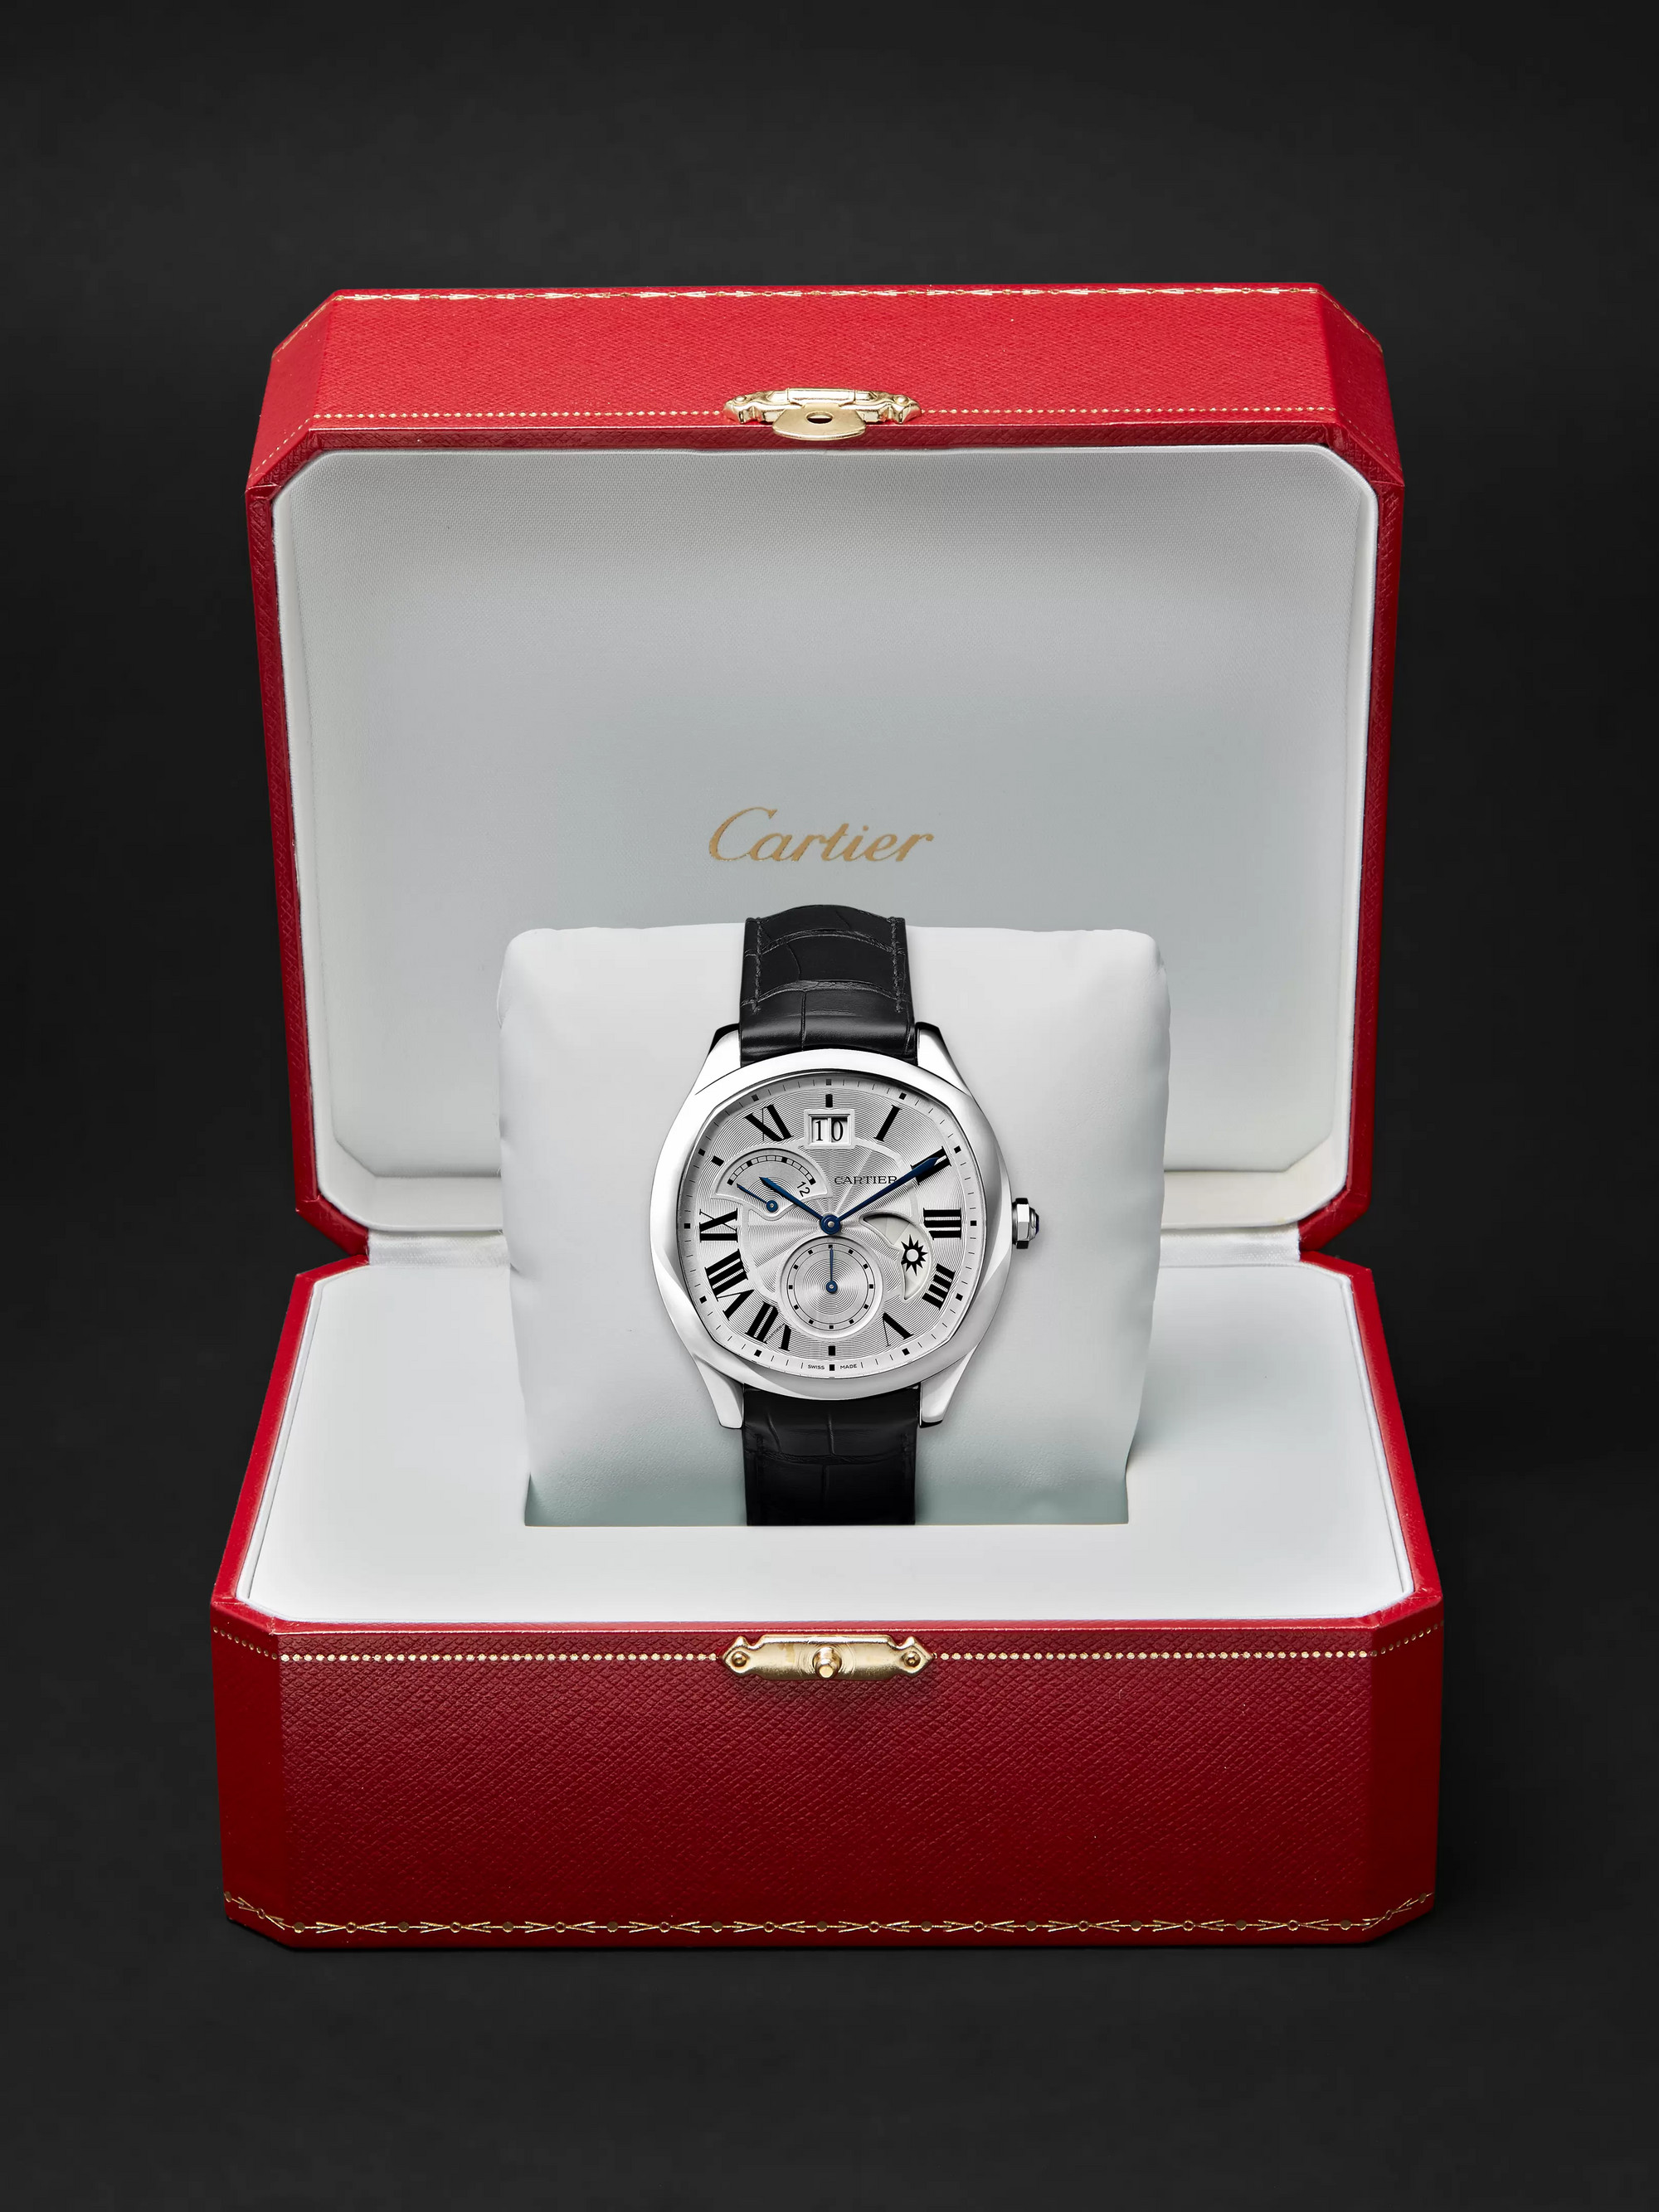 Cartier Drive de Cartier Automatic 40mm Steel and Alligator Watch, Ref. No. CRWSNM0005